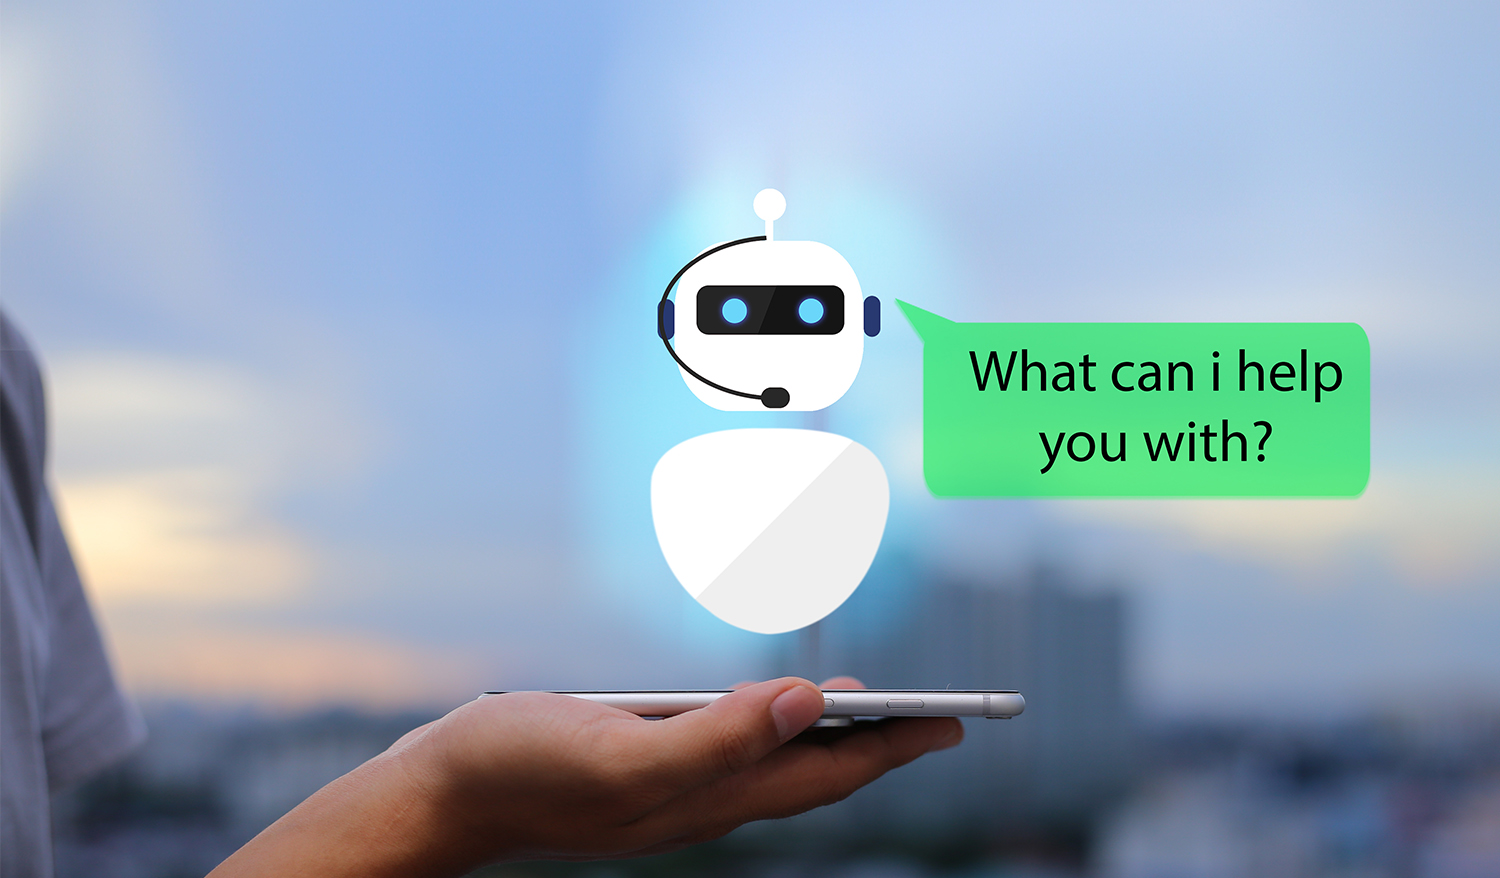 Social_Media_Image_Chatbots_A_Good_Way_to_Engage_and_Enable_Learners